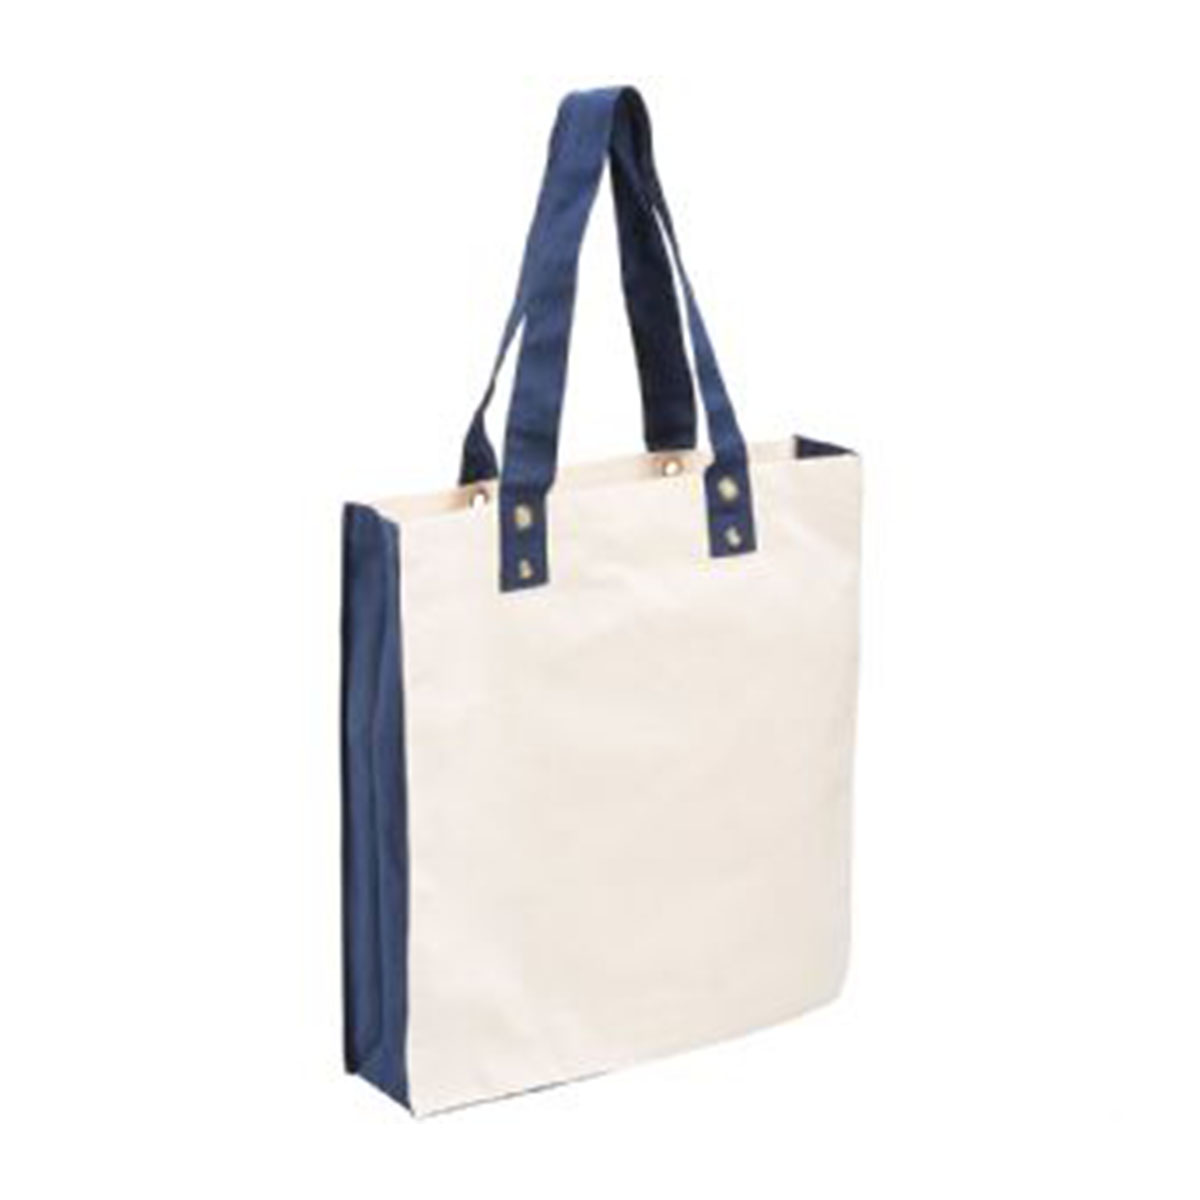 Cotton Canvas Tote-Blue/Natural